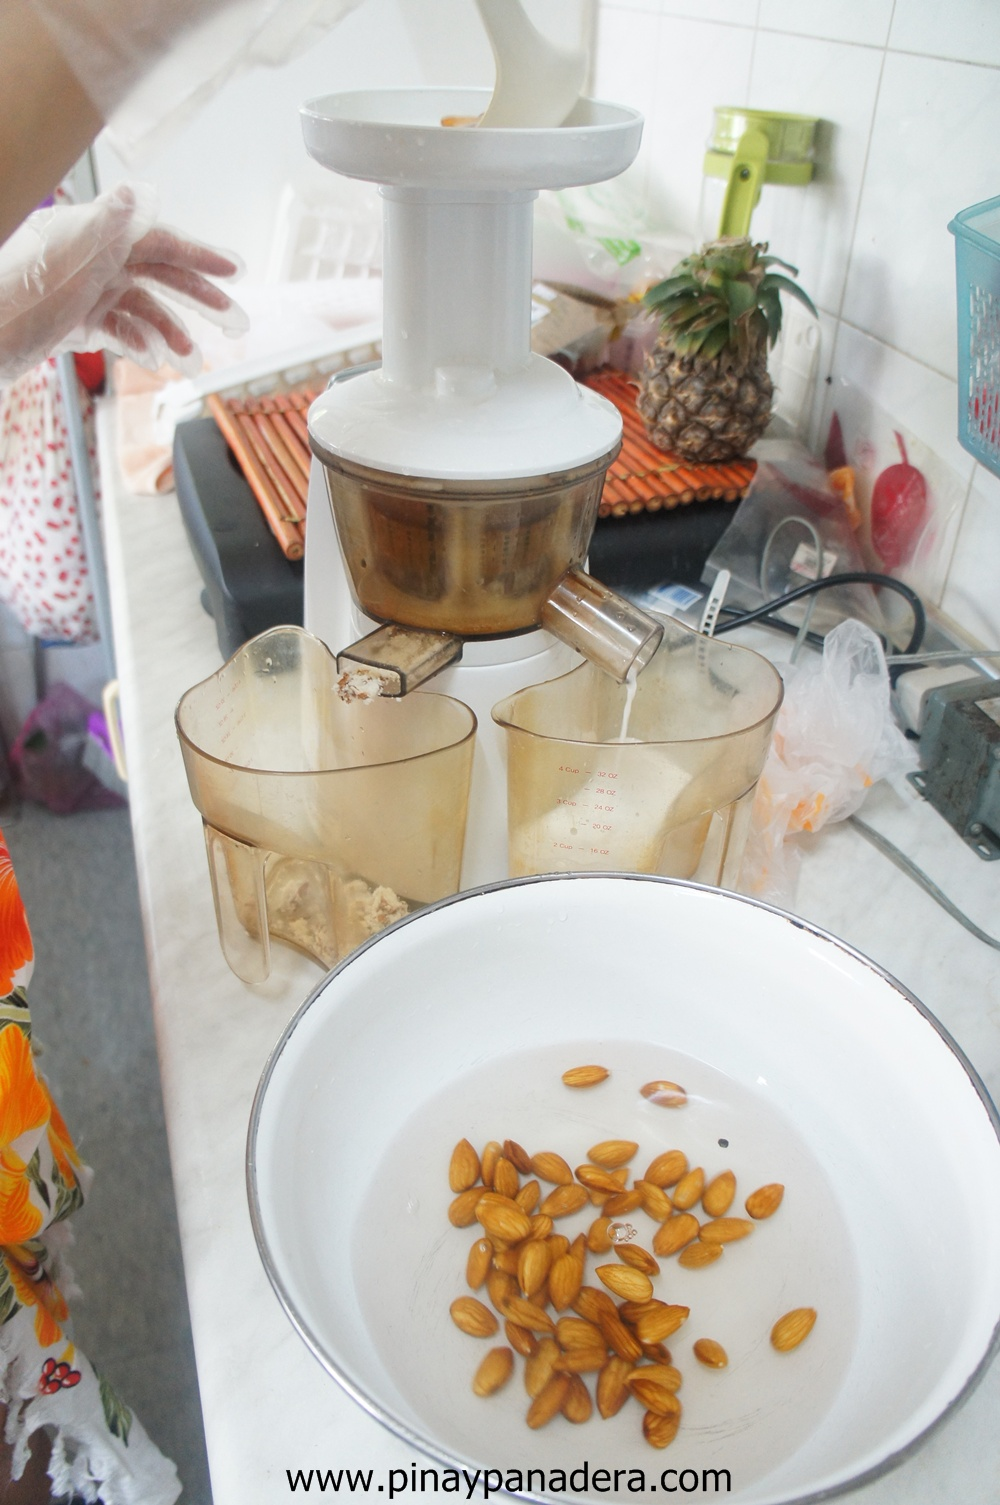 Almond Milk Slow Juicer Recipe : Pinay Panadera s Culinary Adventures: Kath s Nutritious Homemade Almond Milk